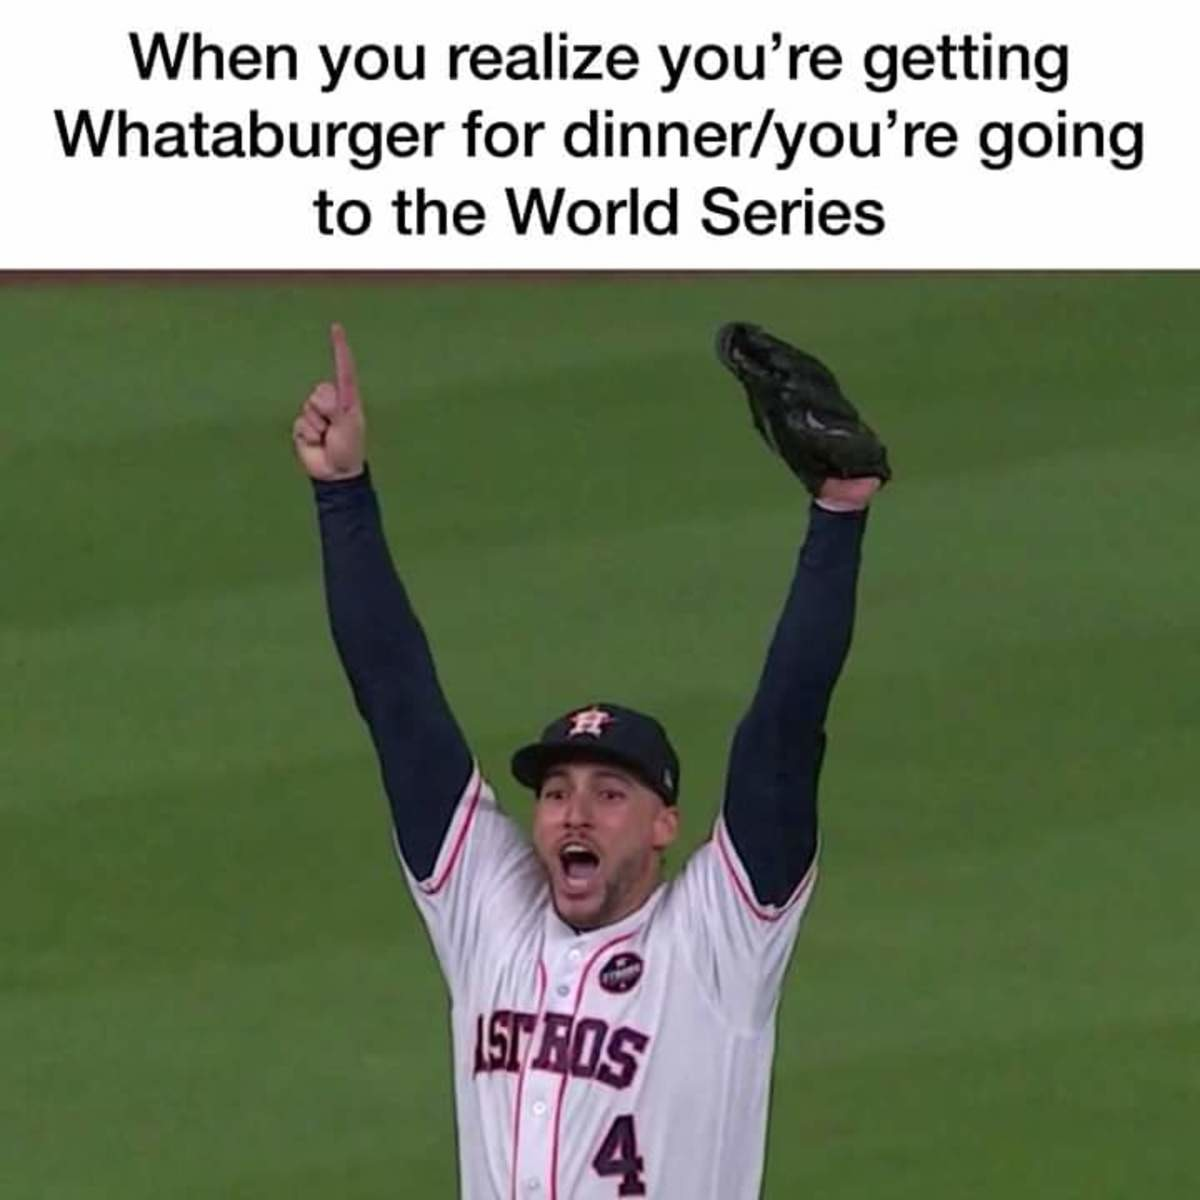 ASTROS TO WORLD SERIES. join list: Texas (166 subs)Mention History.. The meal of champions, with a side of Dr Pepper. The Texas drink celebrates. join list: DrPepperMention History